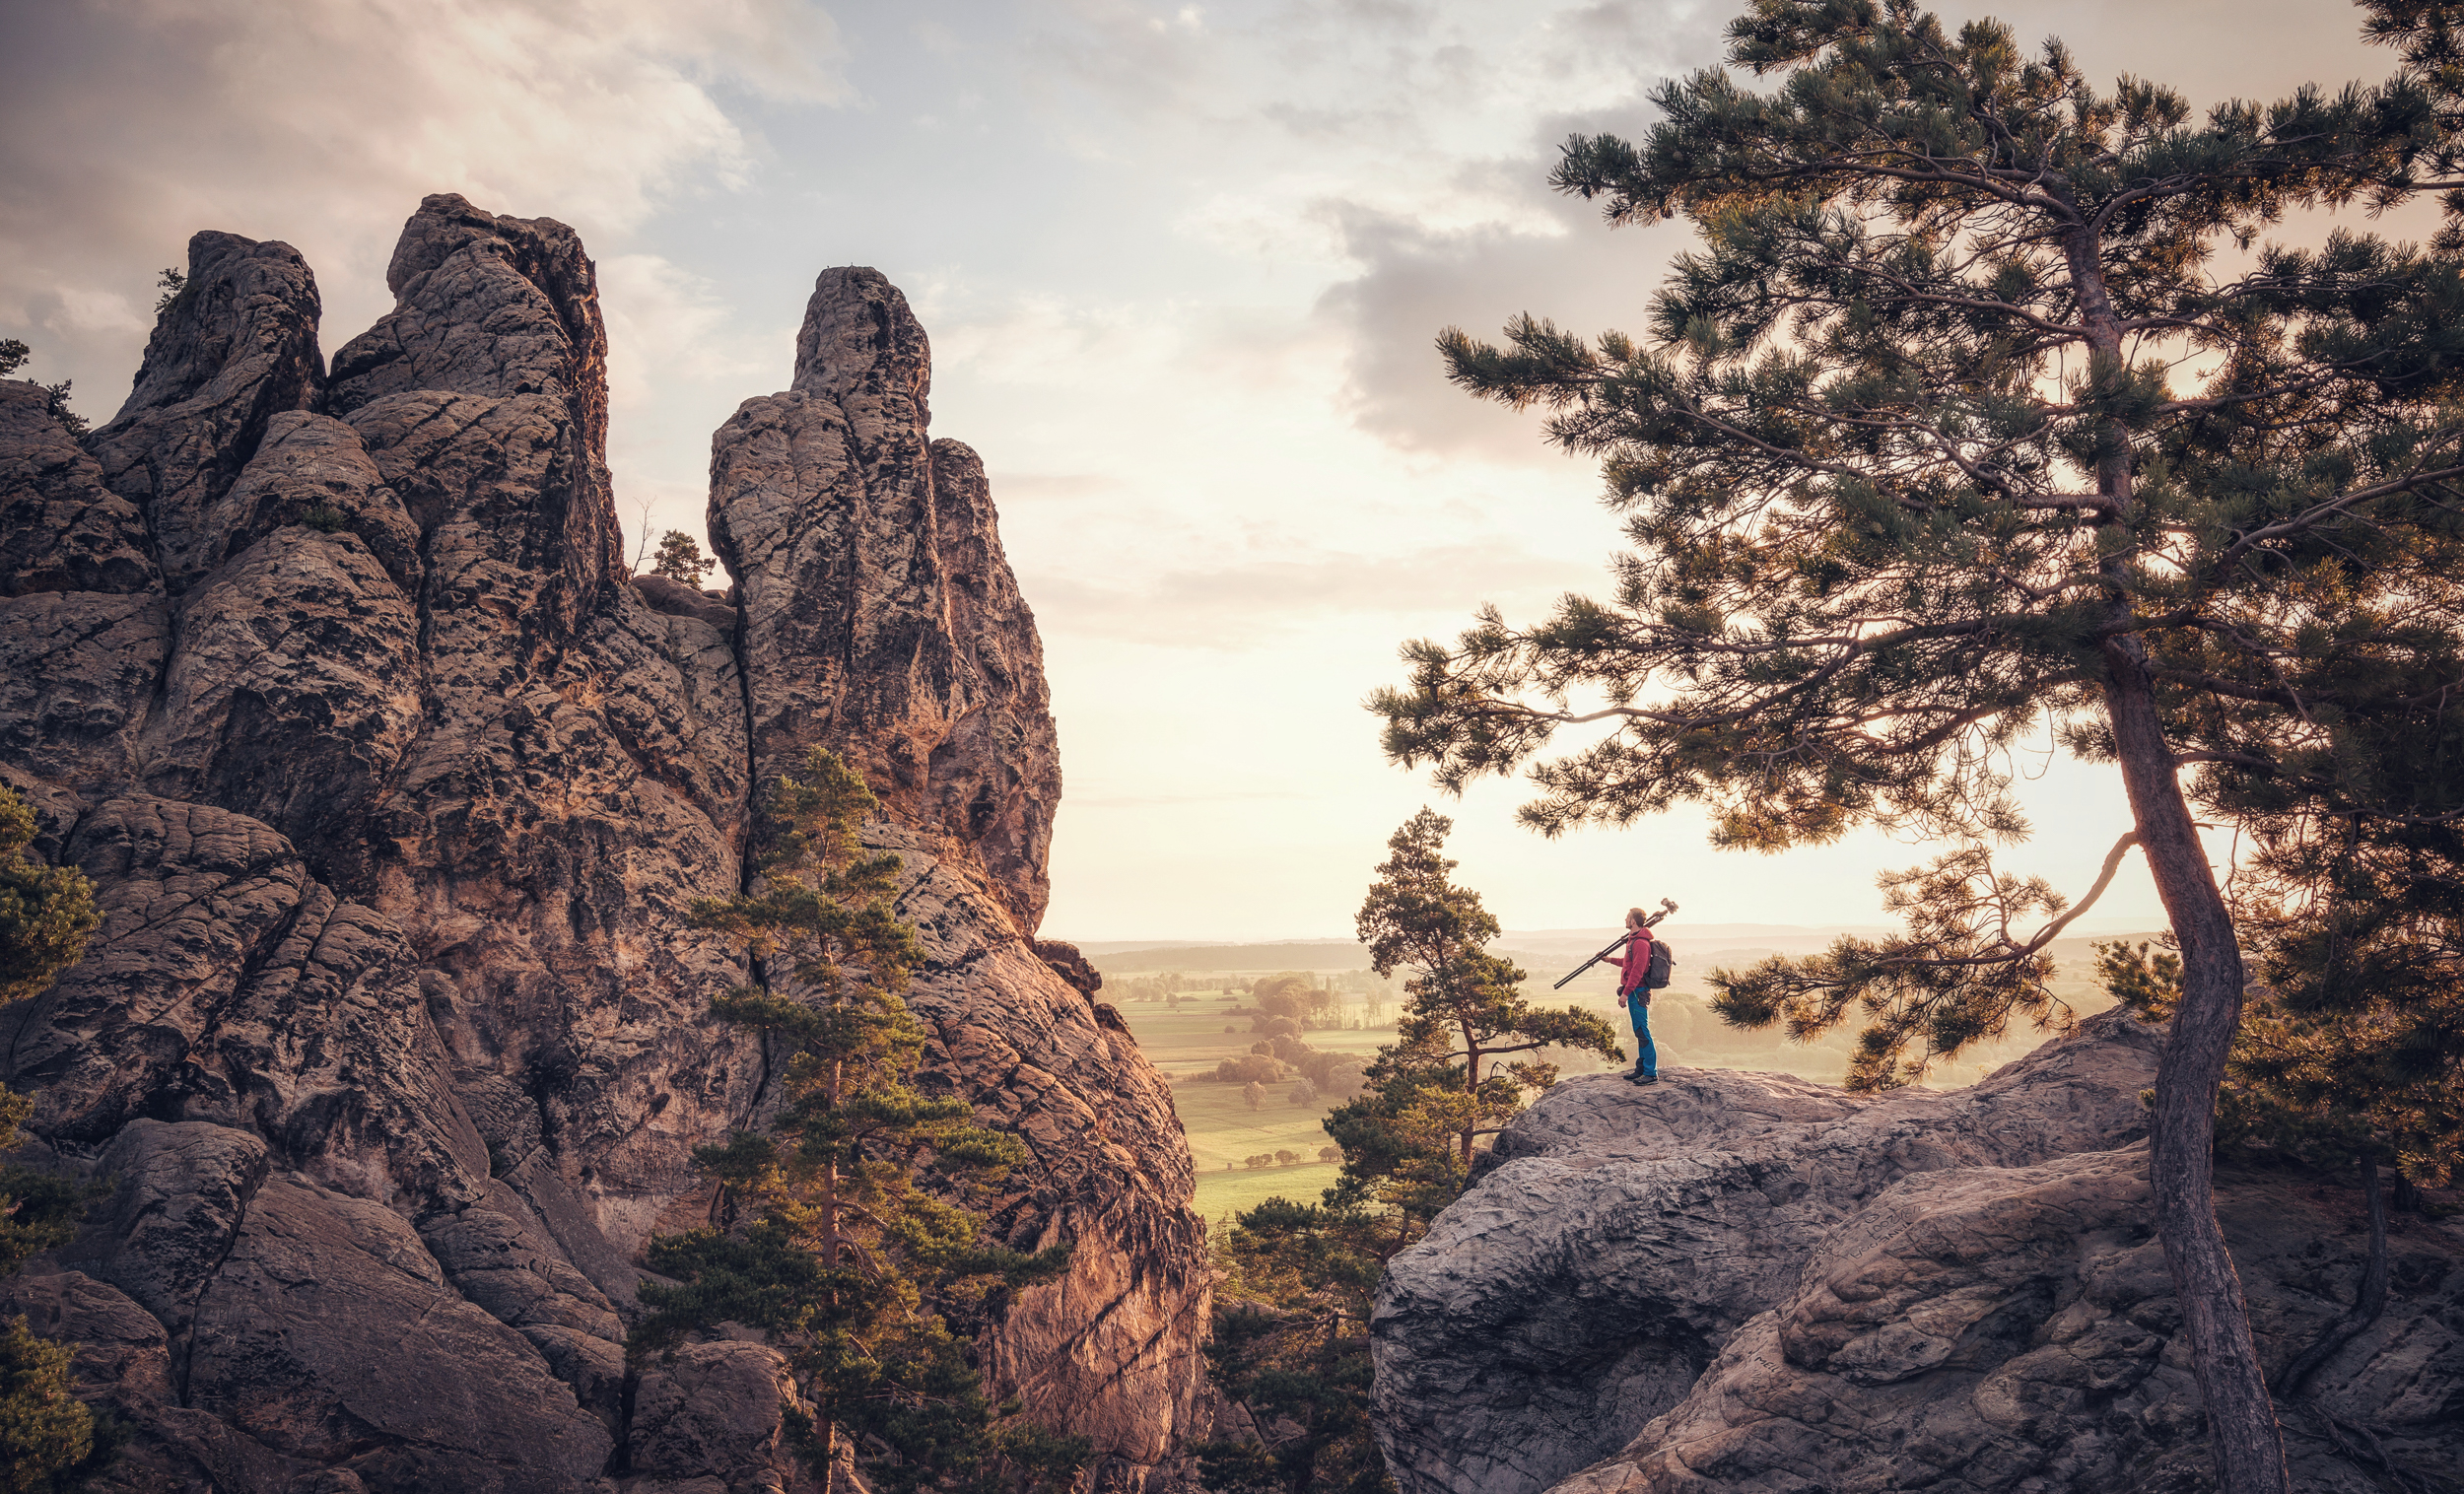 The Landscape Photographer - Harz Mountains - Germany 2017